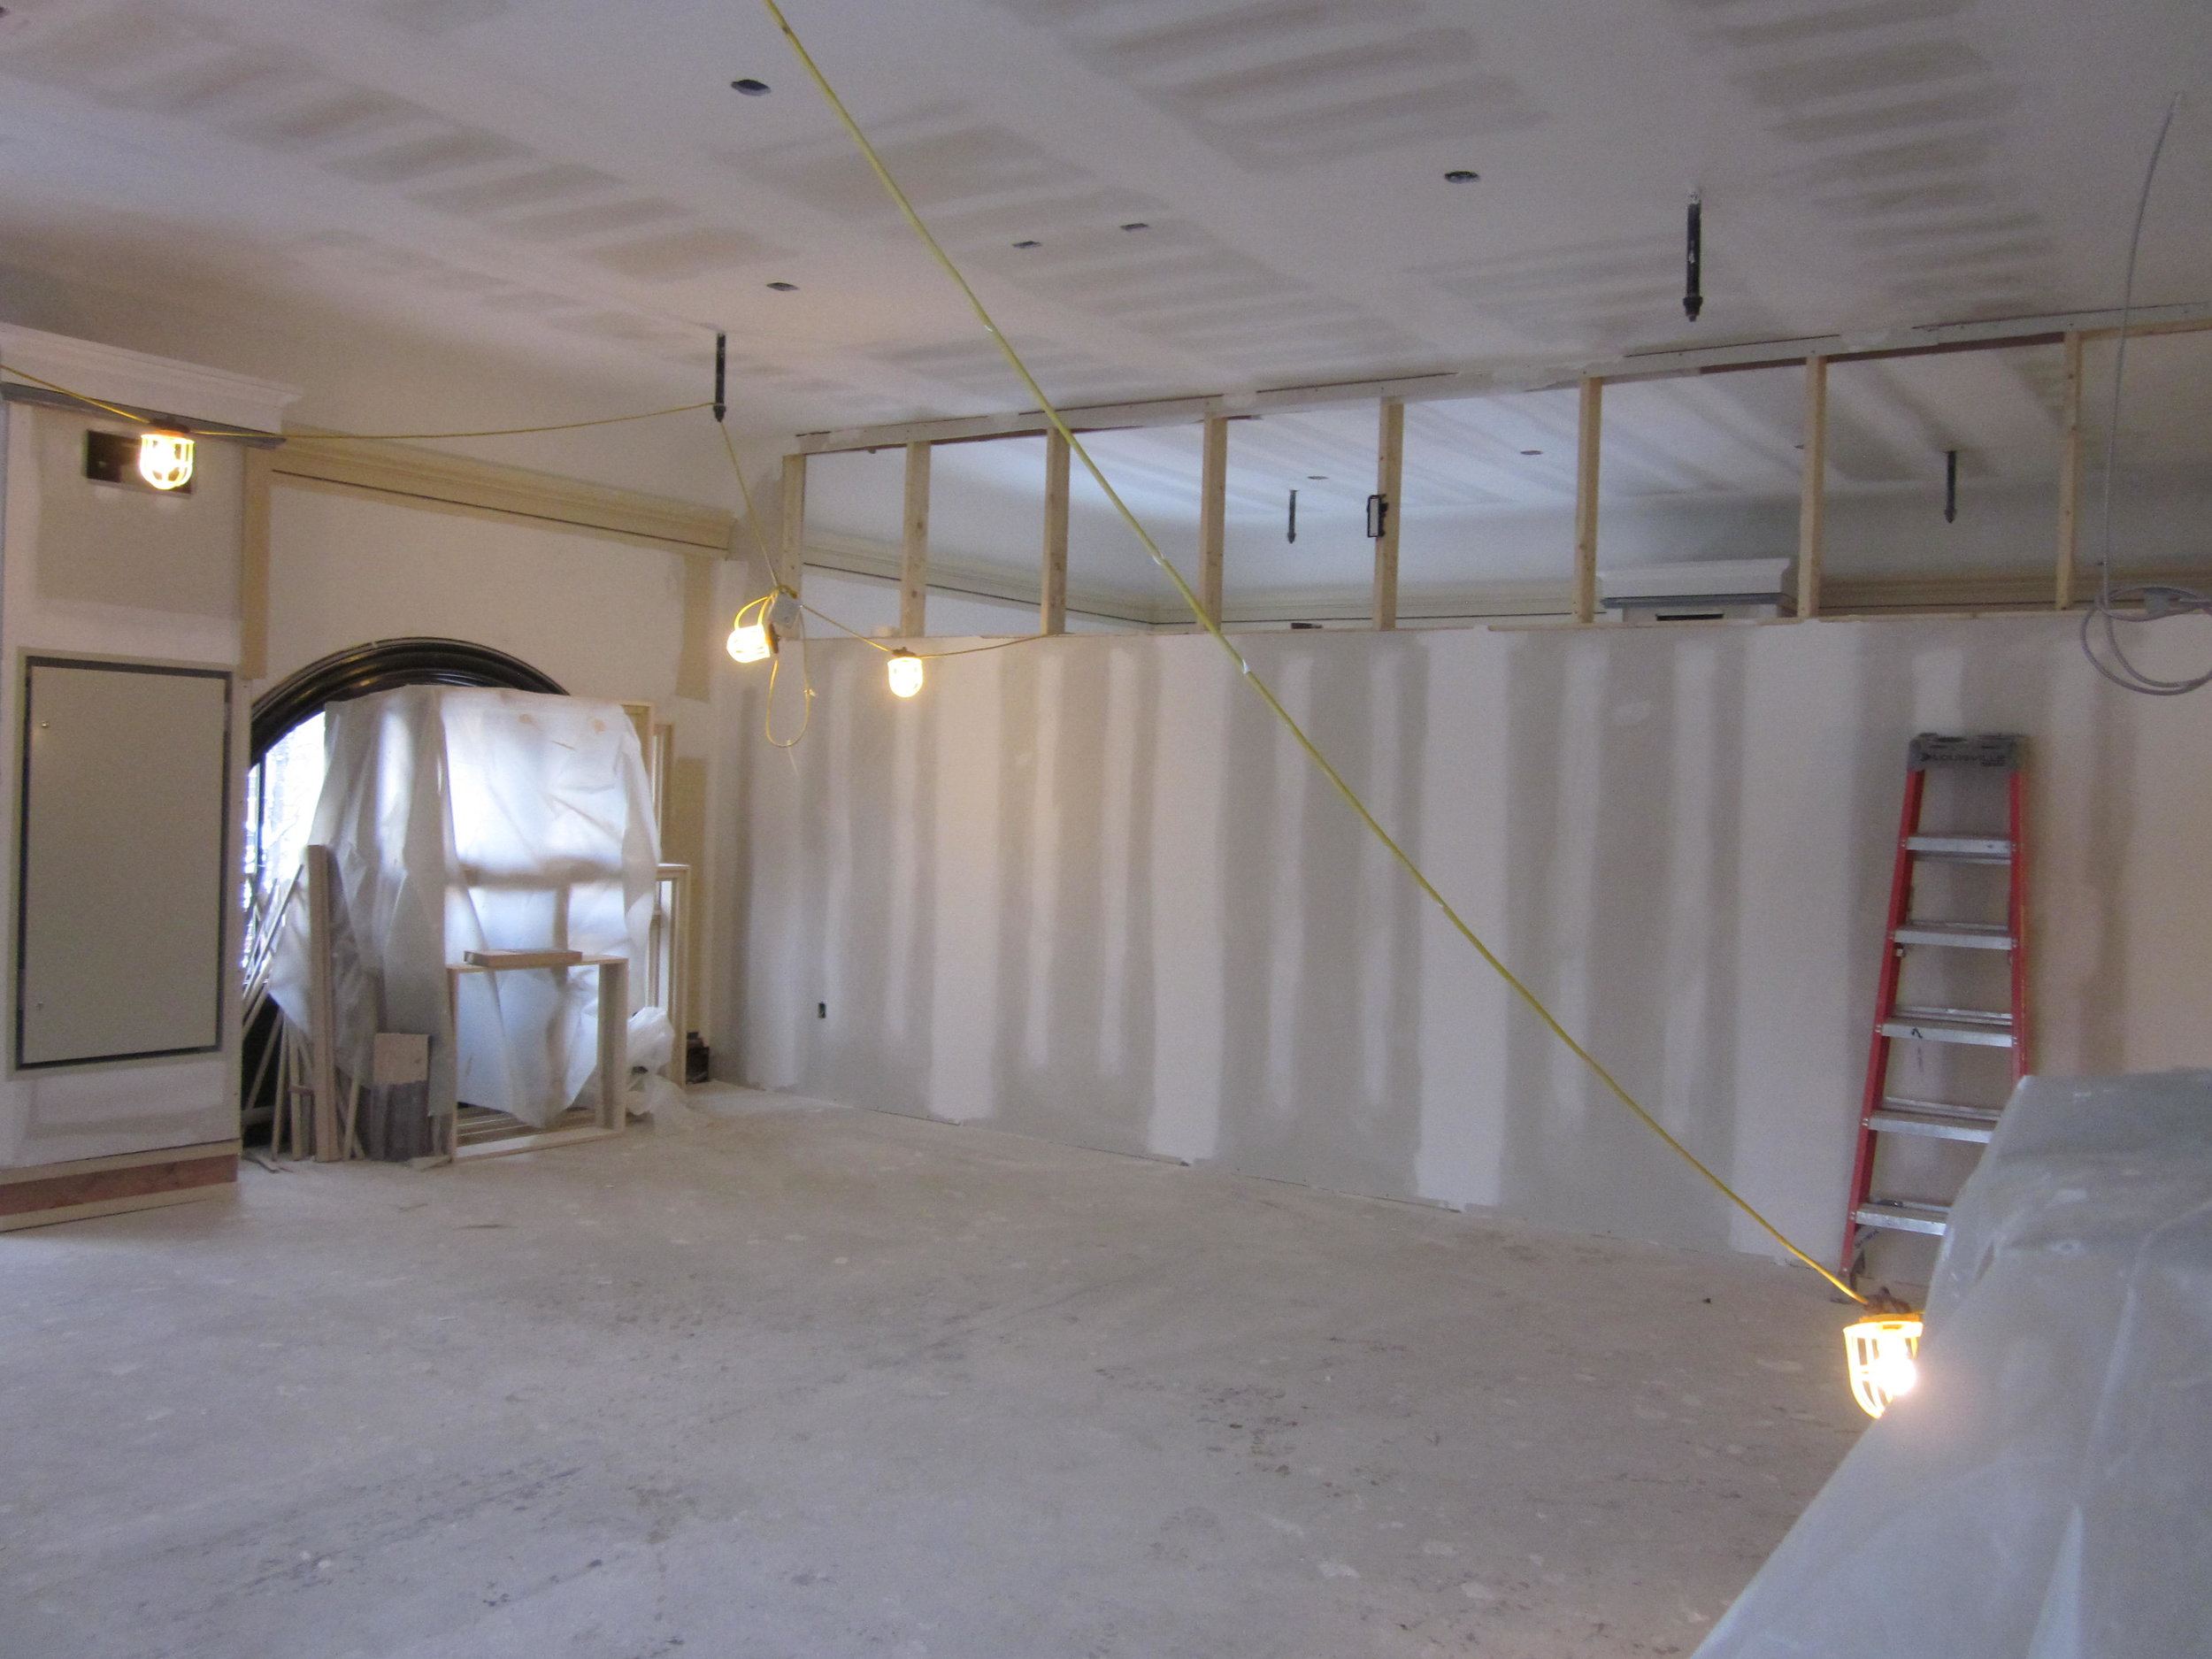 Former Friends Room divided to create medium and large meeting rooms. (large room shown)